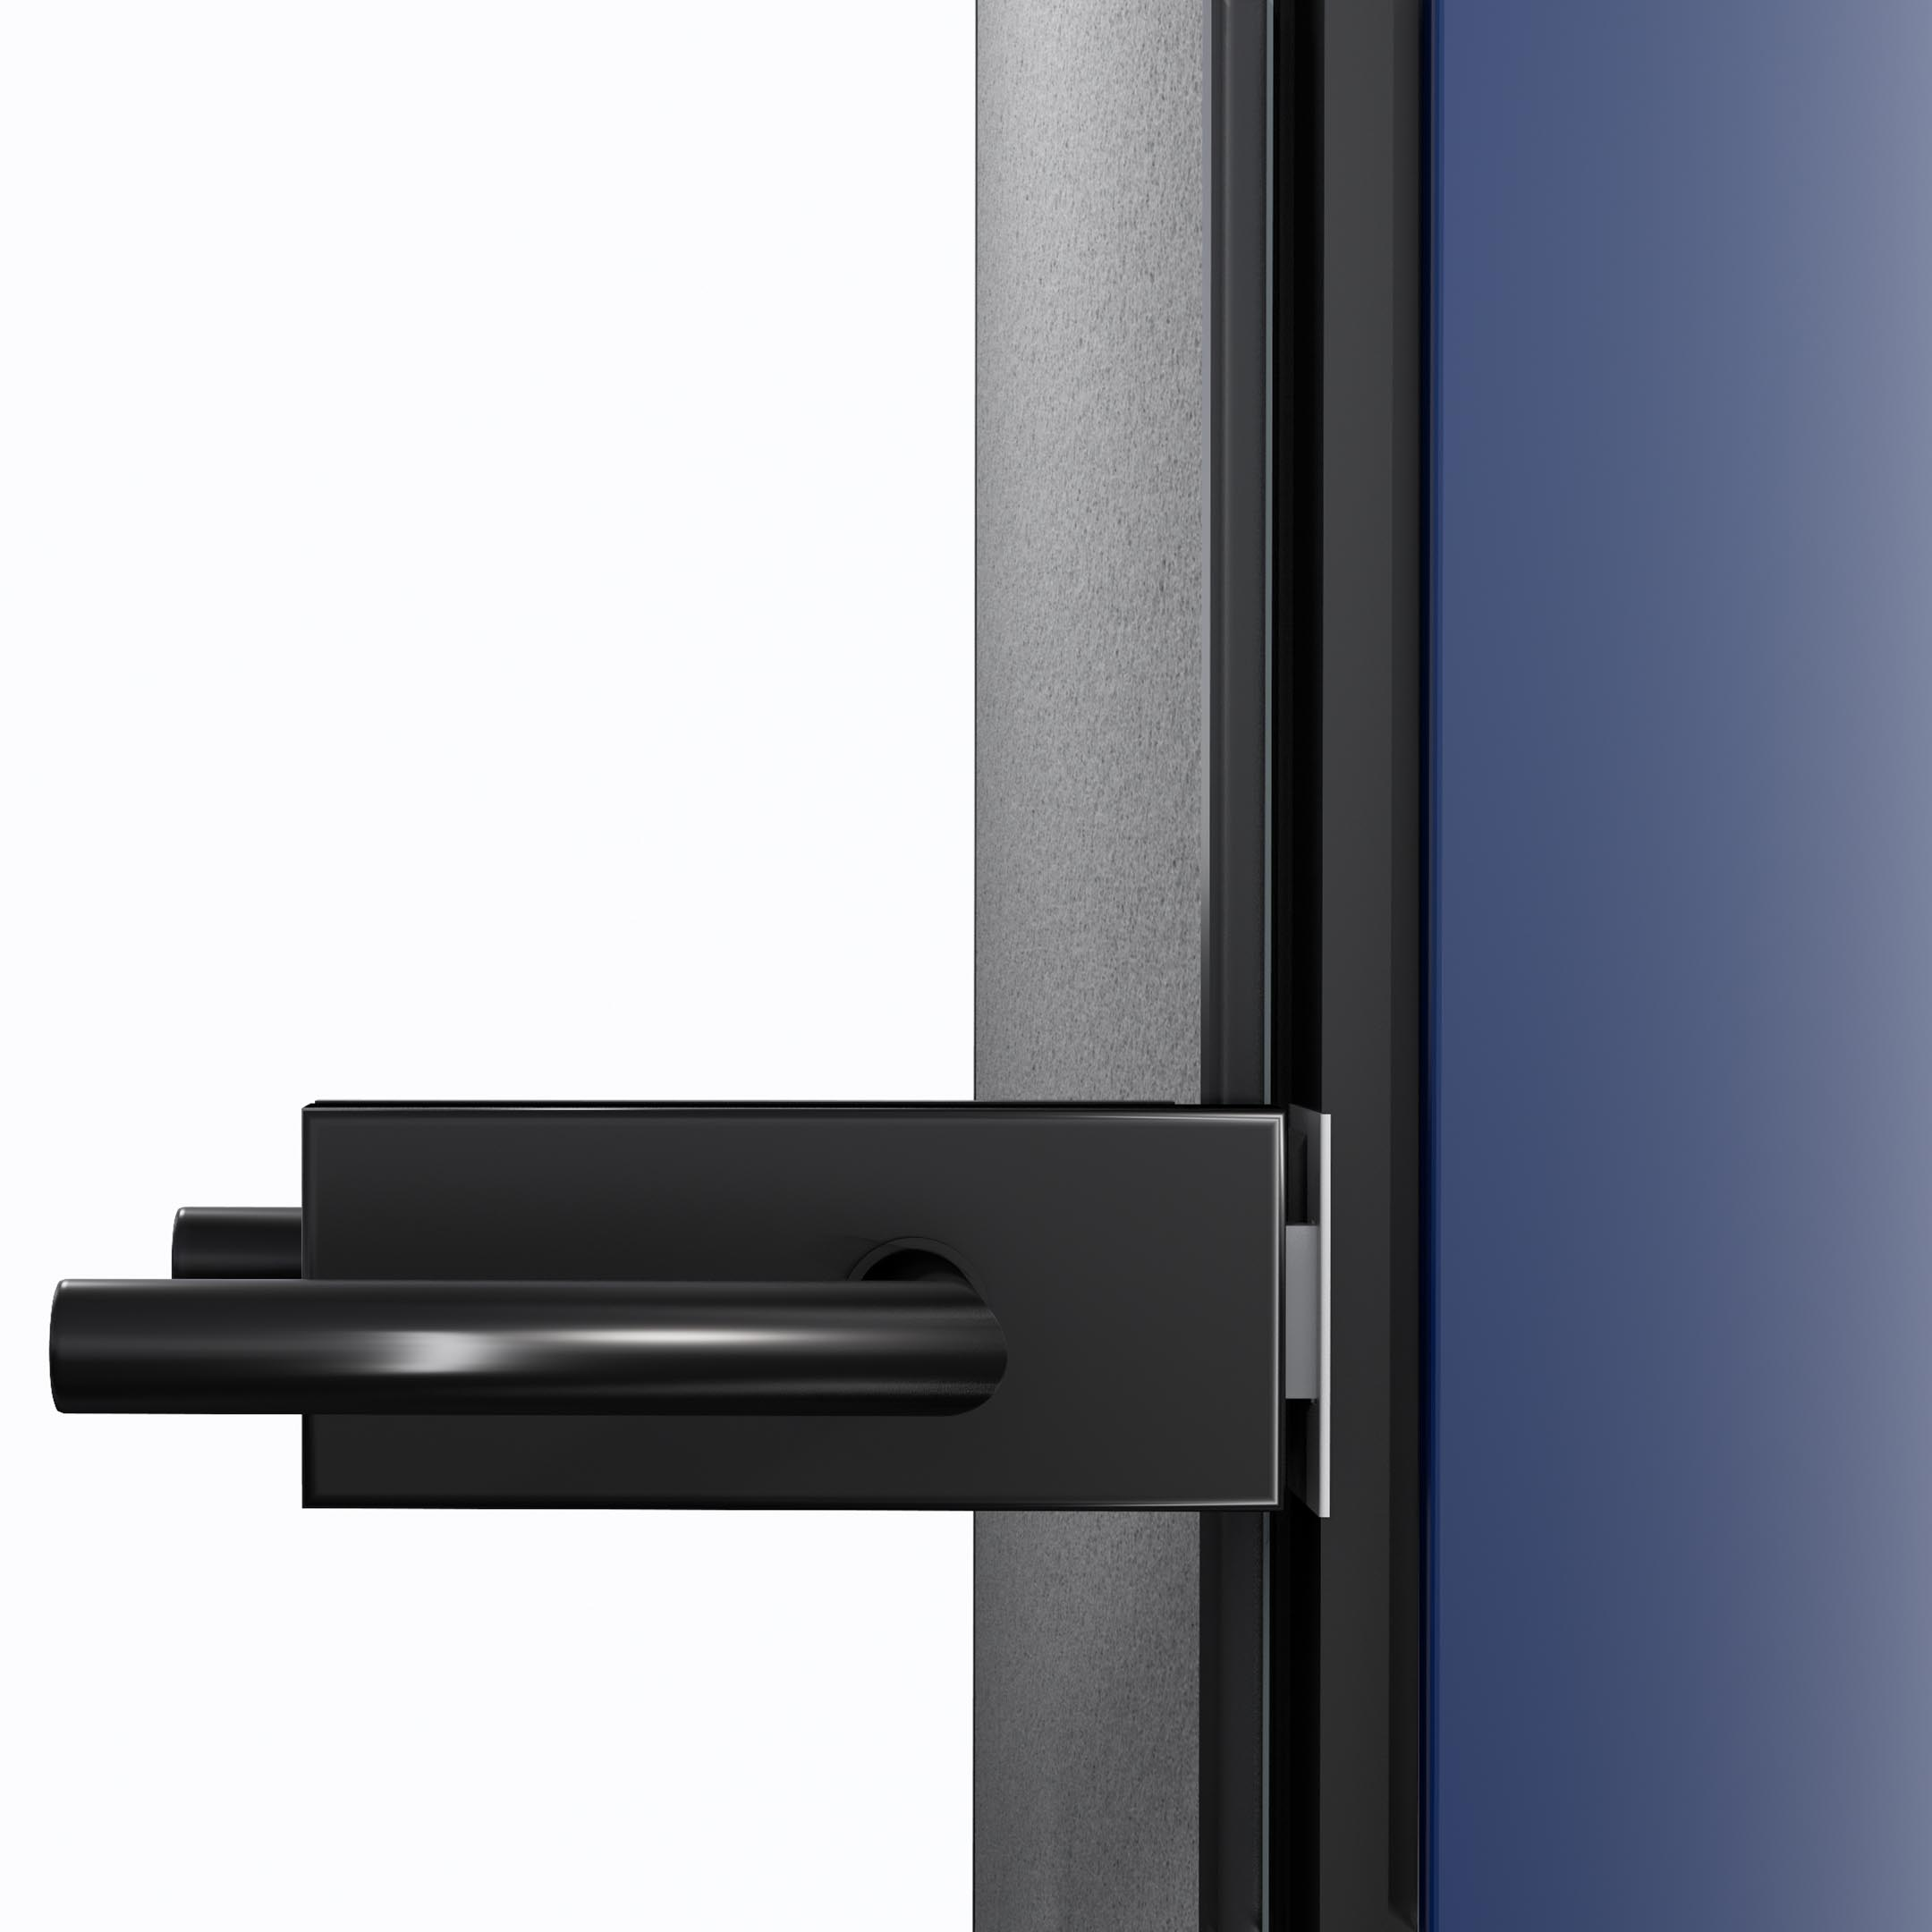 BLUE TIBER SPACE 1_BLACK HANDLE AND PROFILE